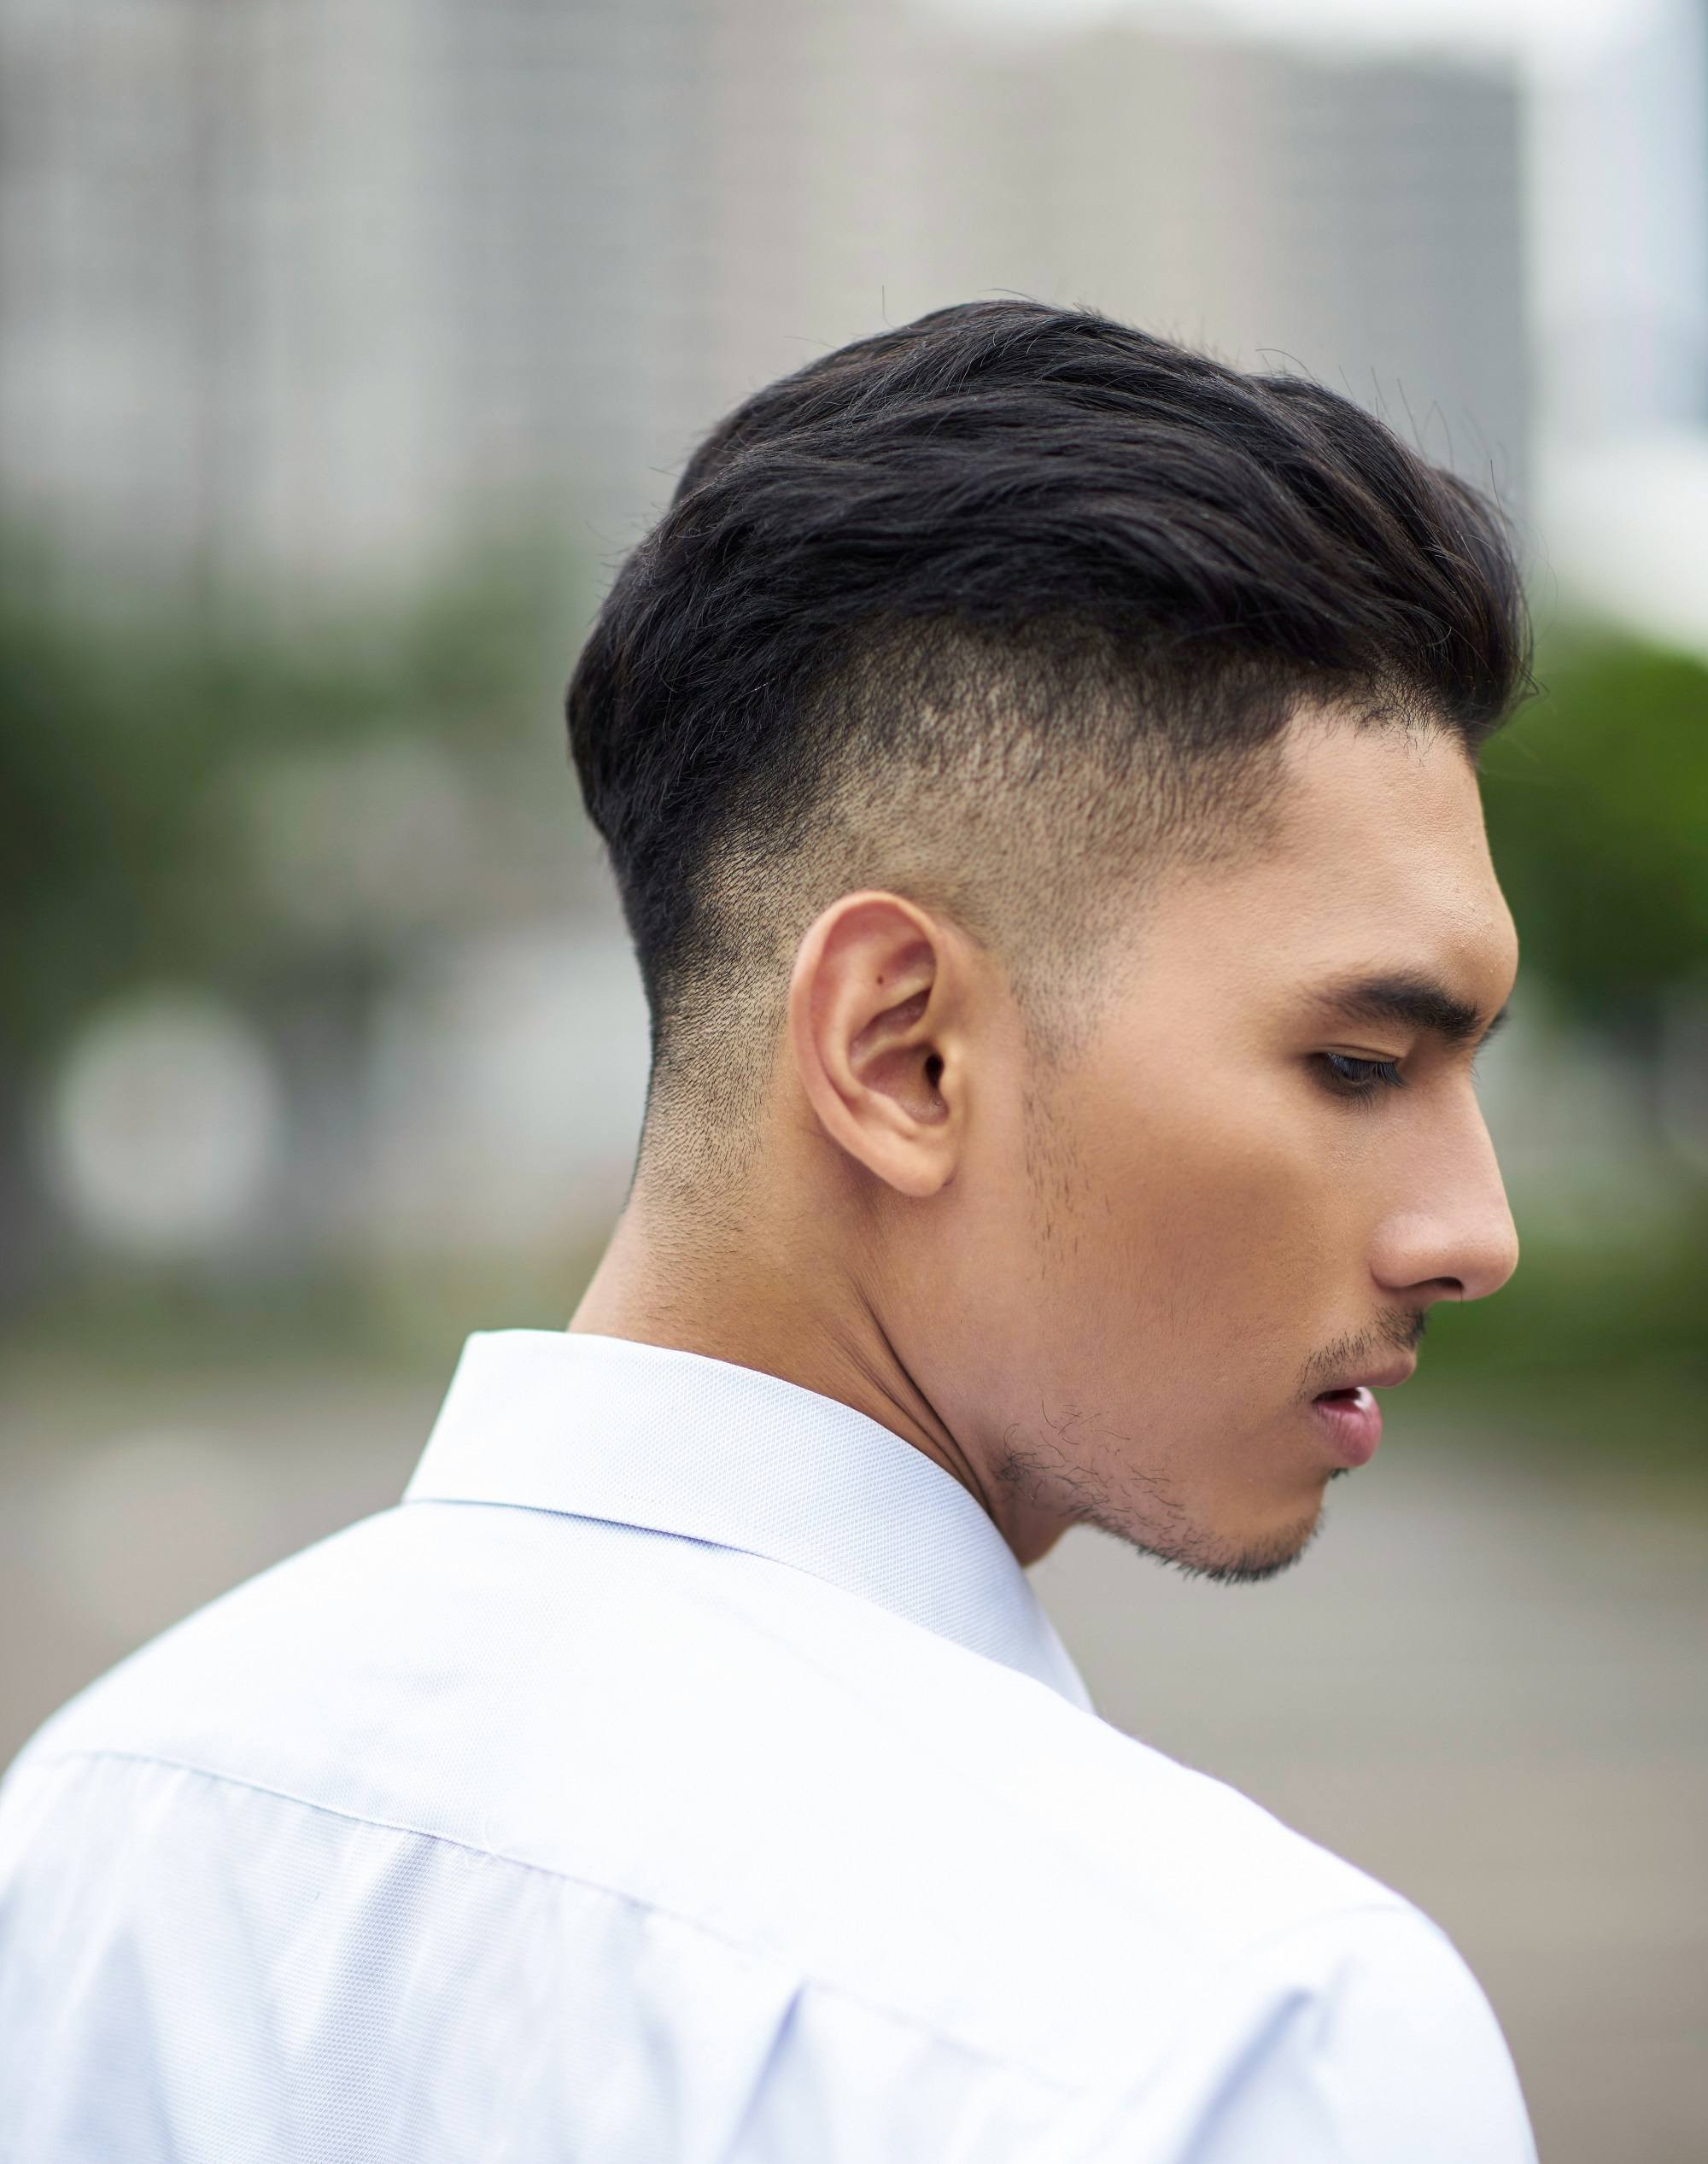 Healthy scalp: Closeup side view of an Asian man with shaved side hairstyle outdoors